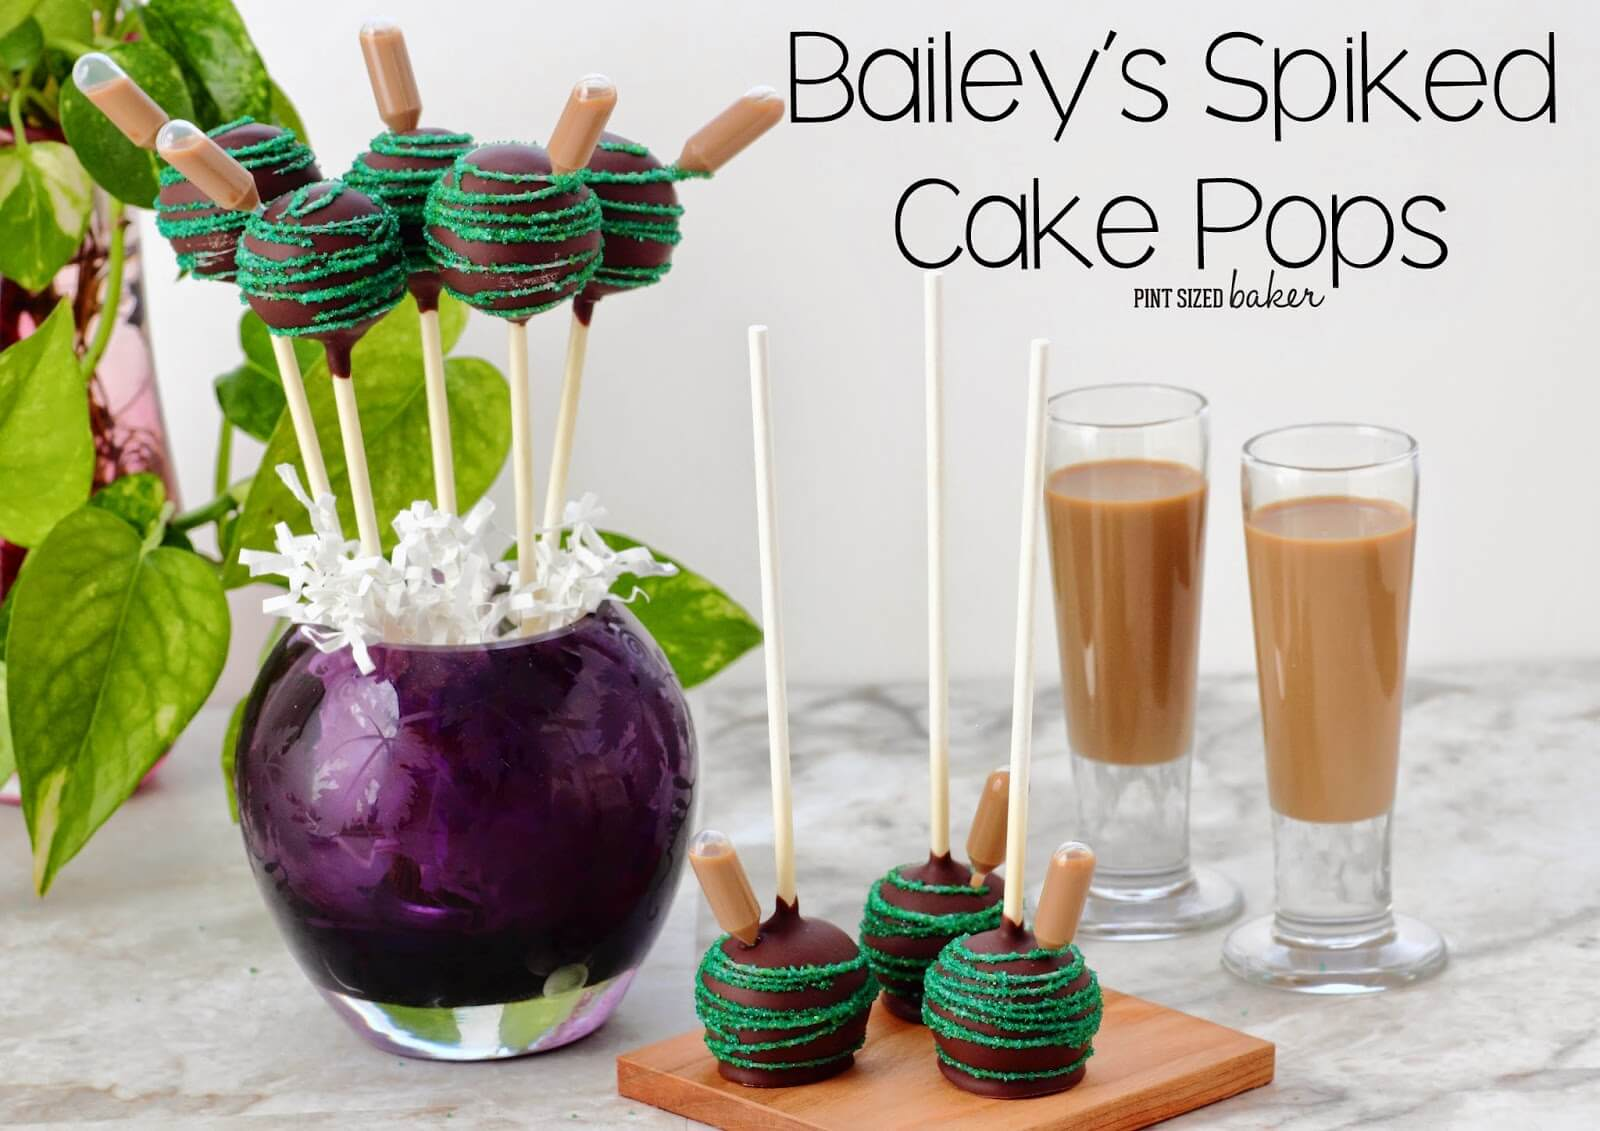 Bailey's Spiked Cake Pops